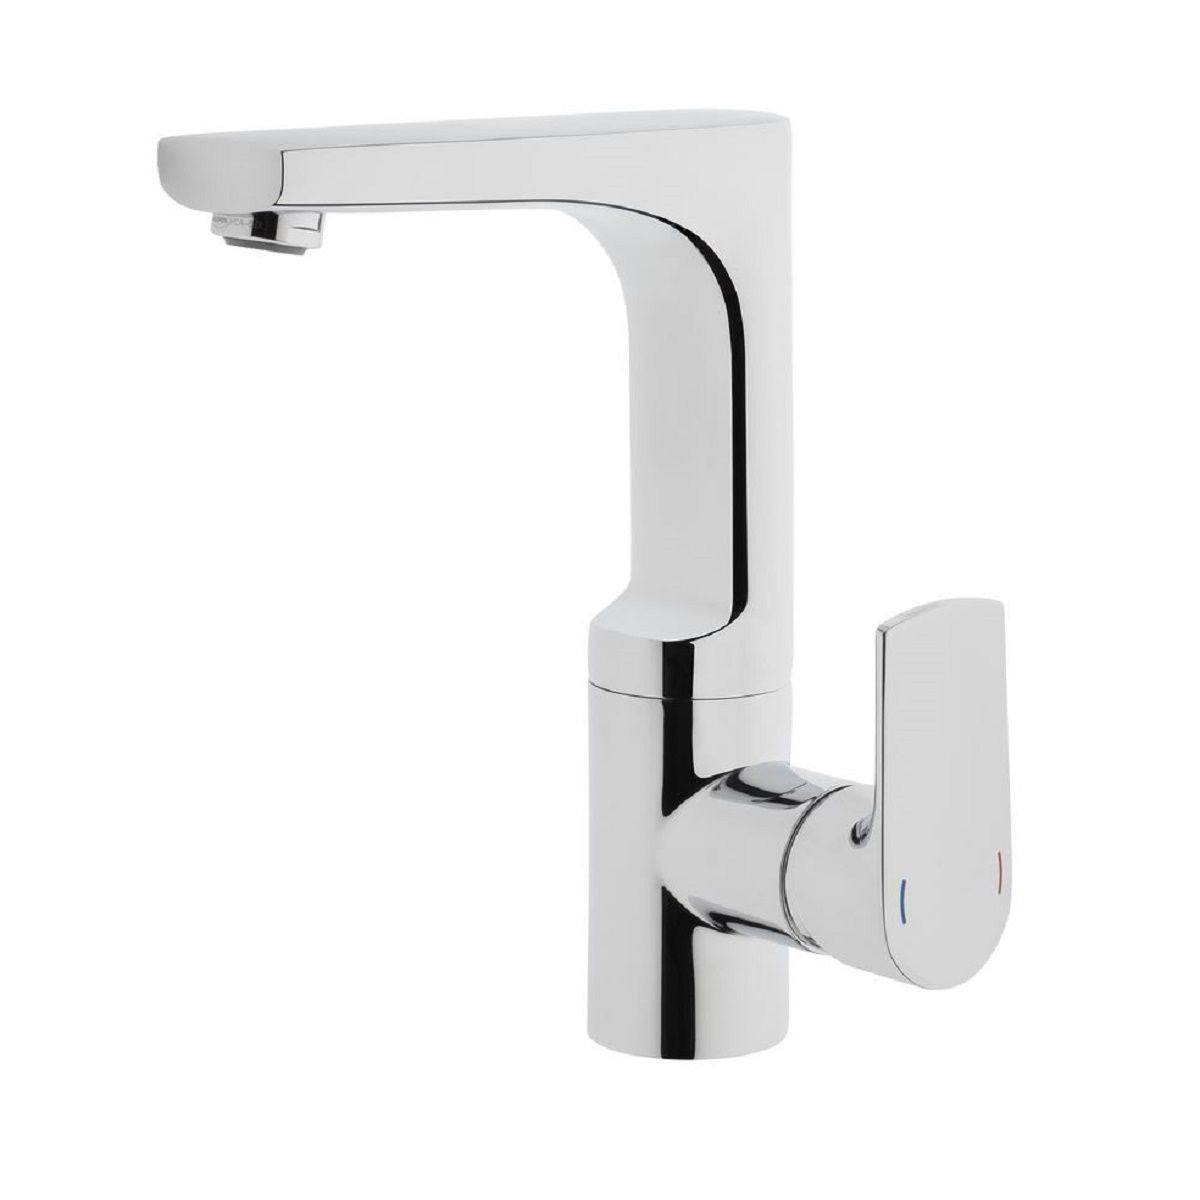 VitrA Sento Monobloc Basin Mixer With Swivel Spout